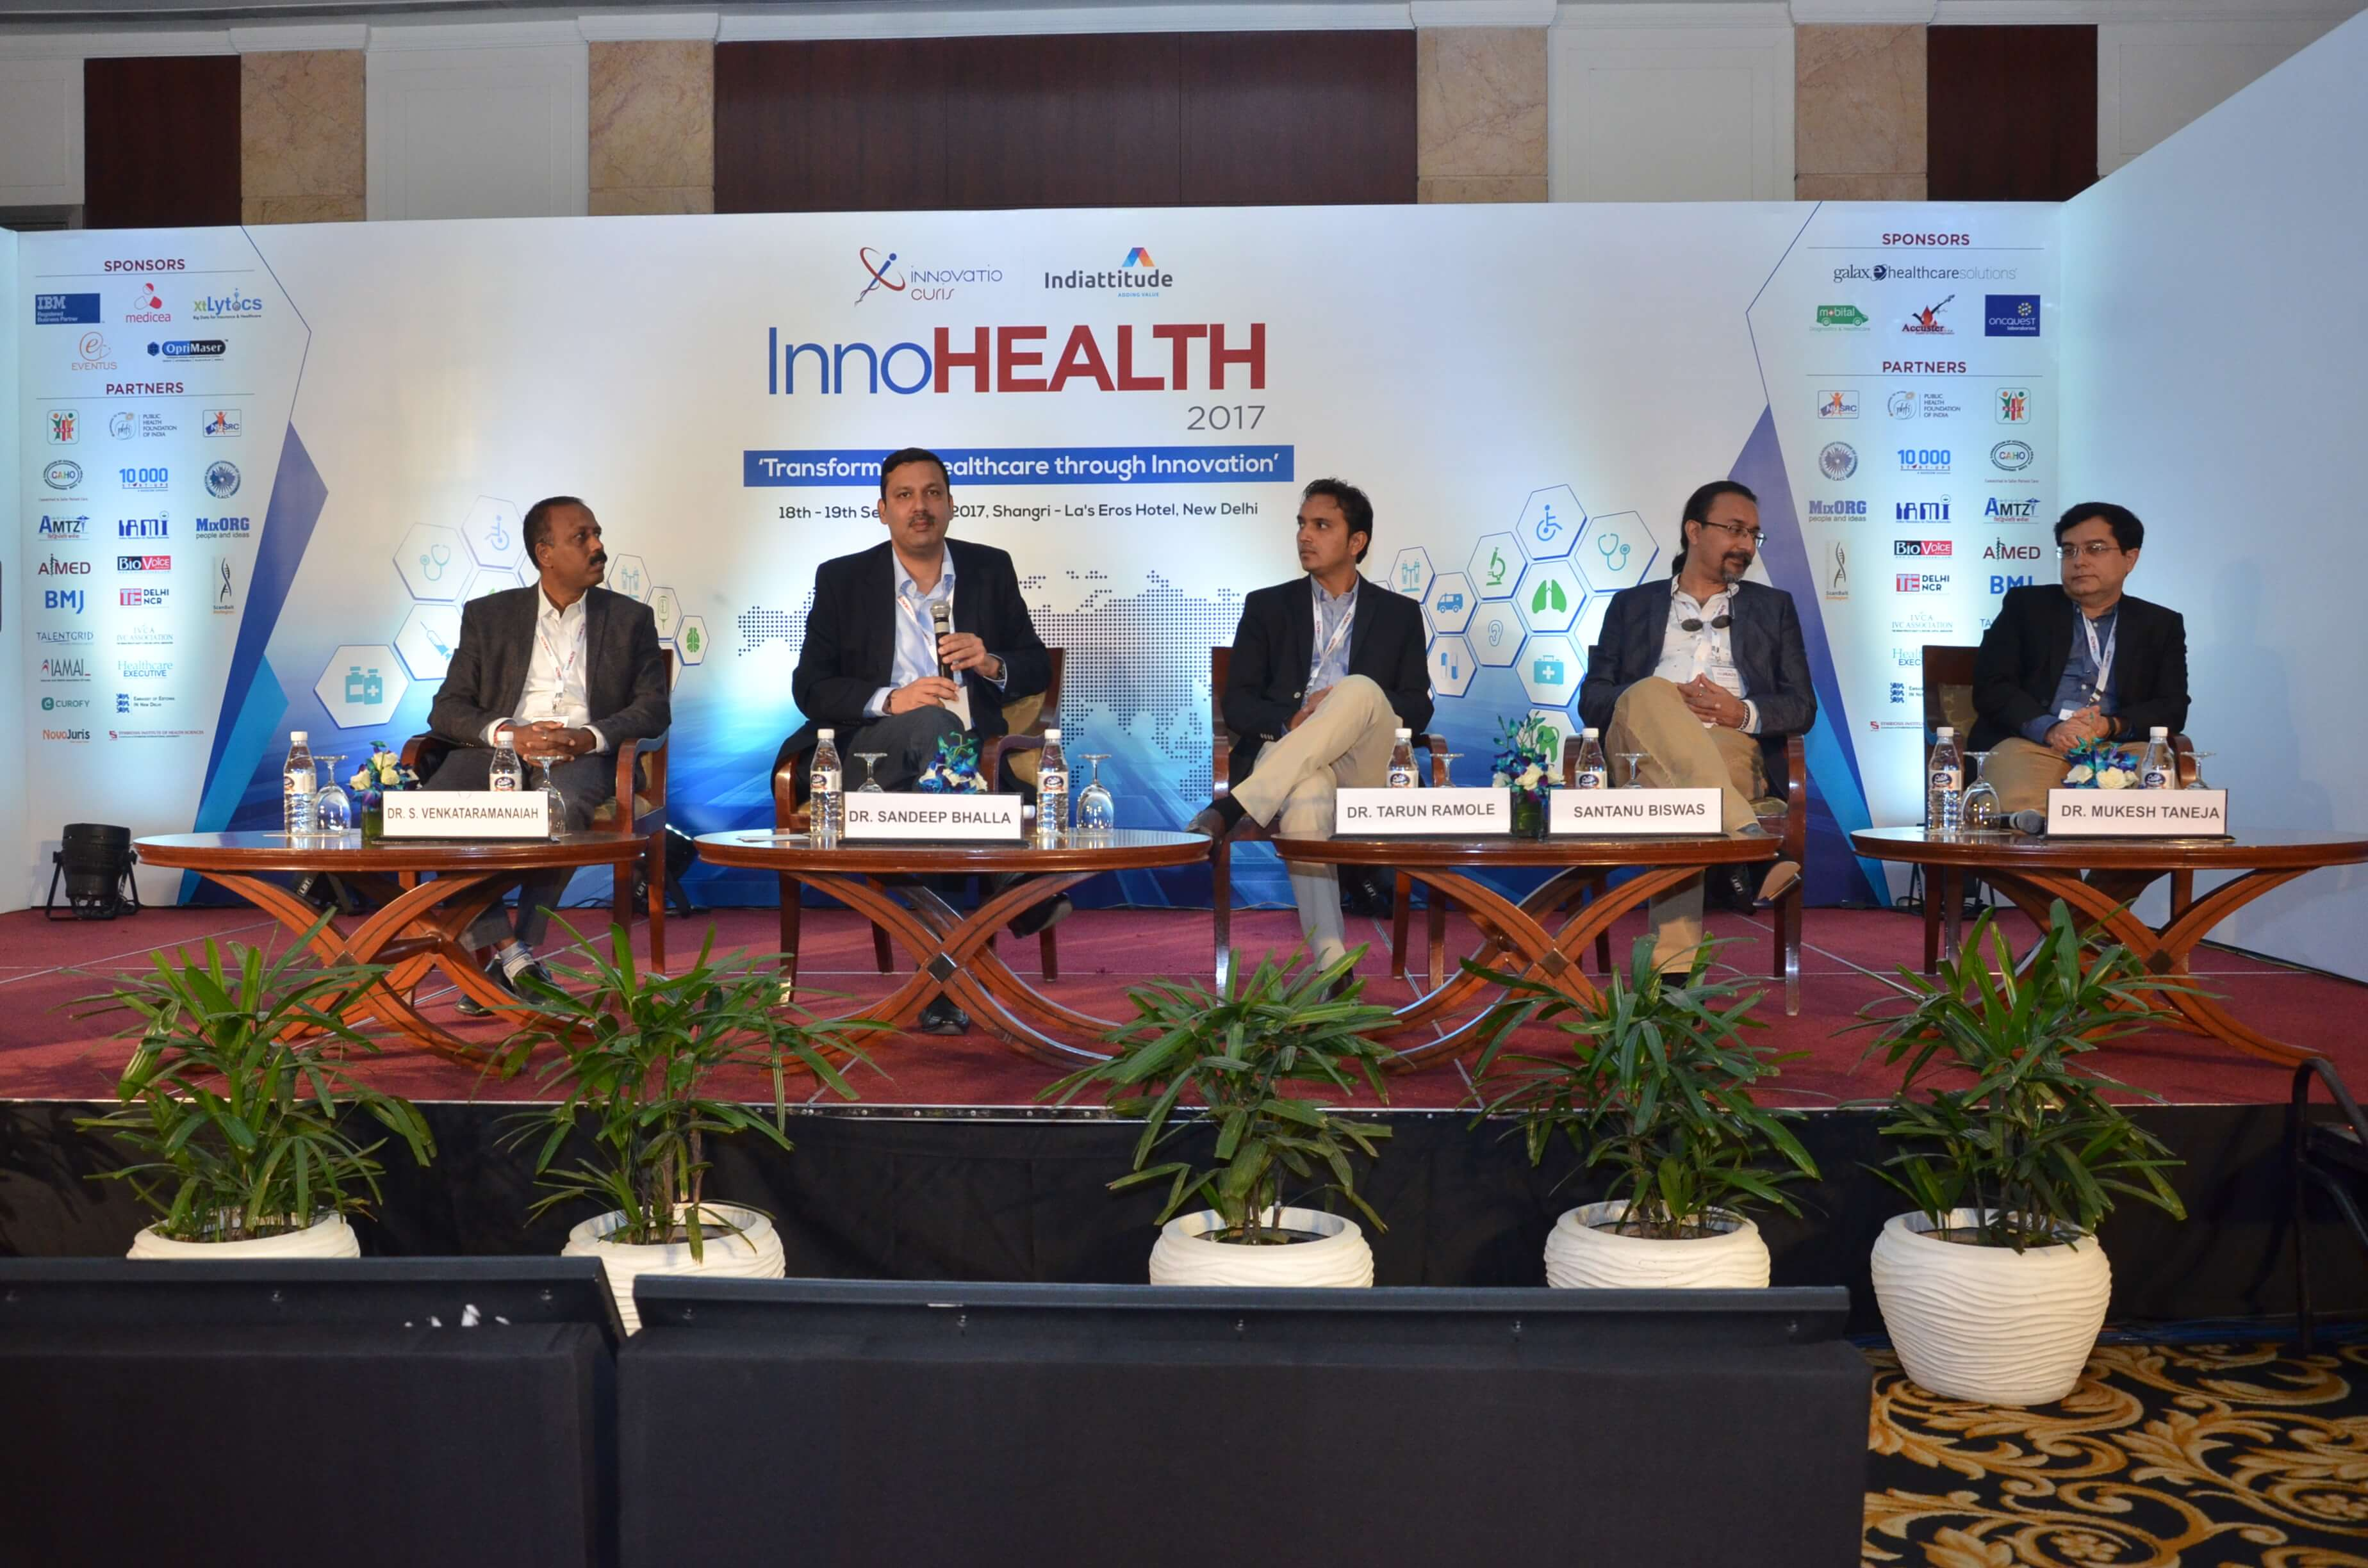 Panel of session 5 at InnoHEALTH 2017